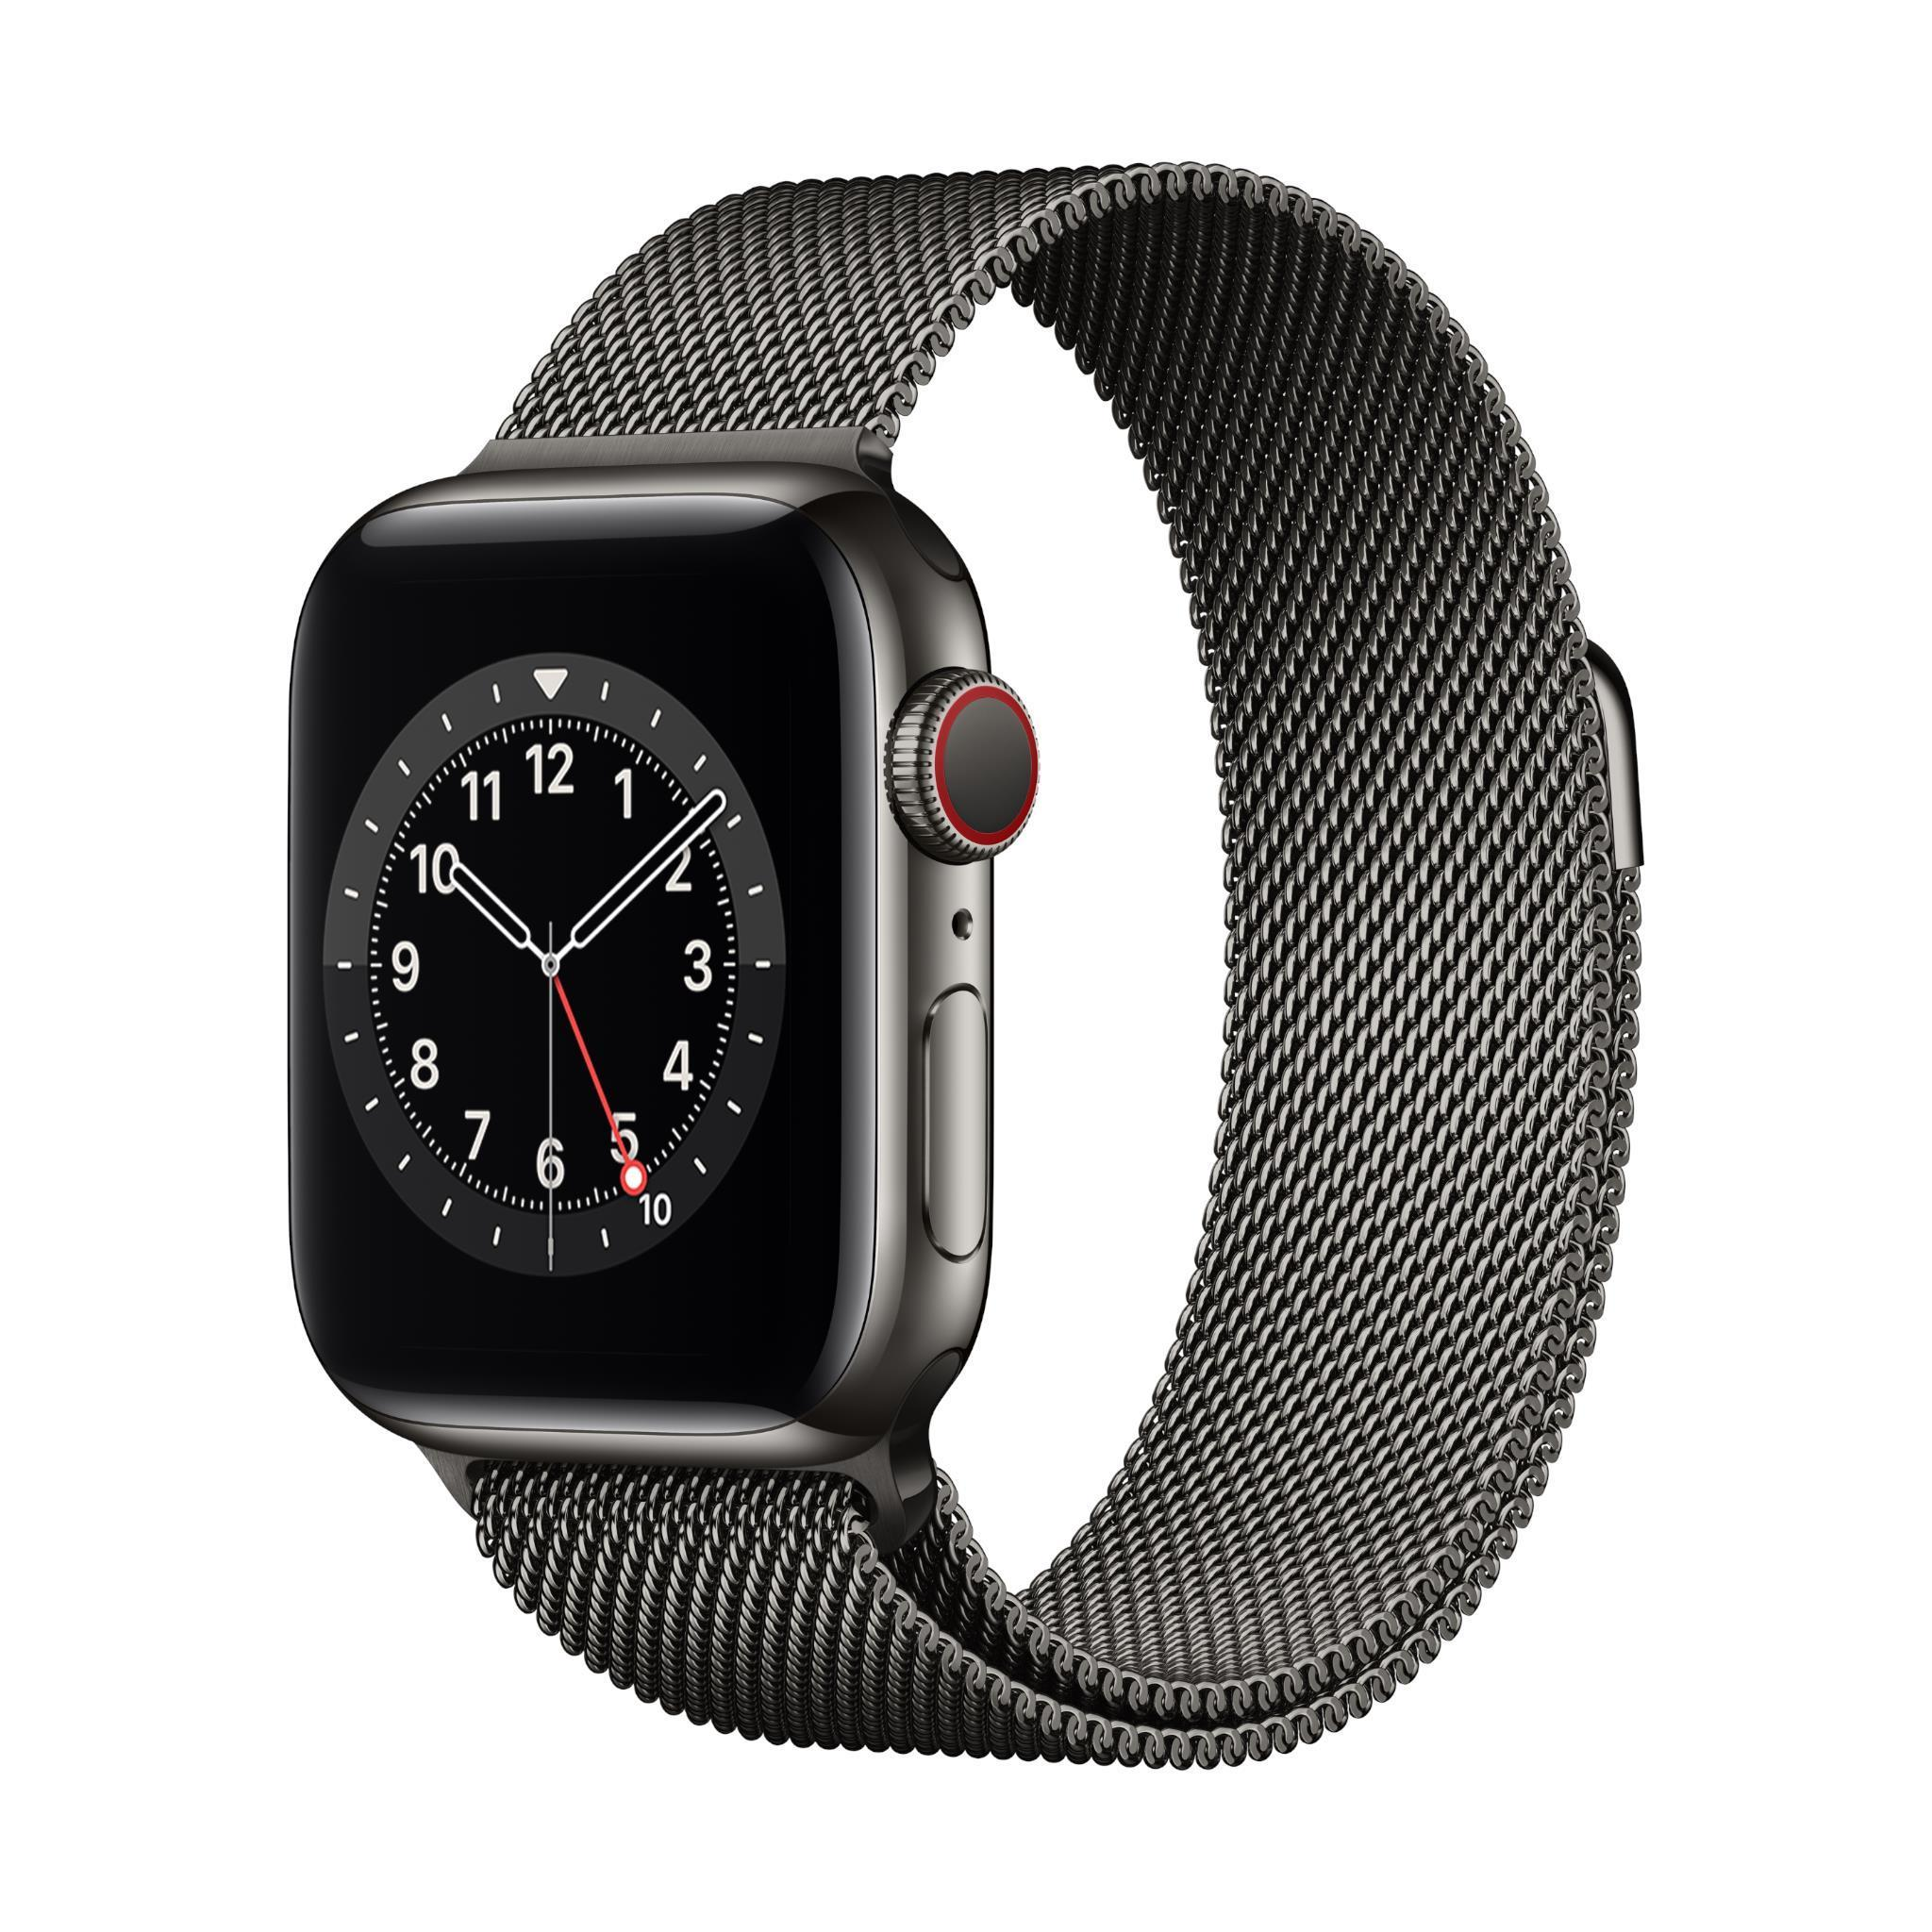 Apple Watch Series 6 40mm Graphite Stainless Steel Case GPS + Cellular